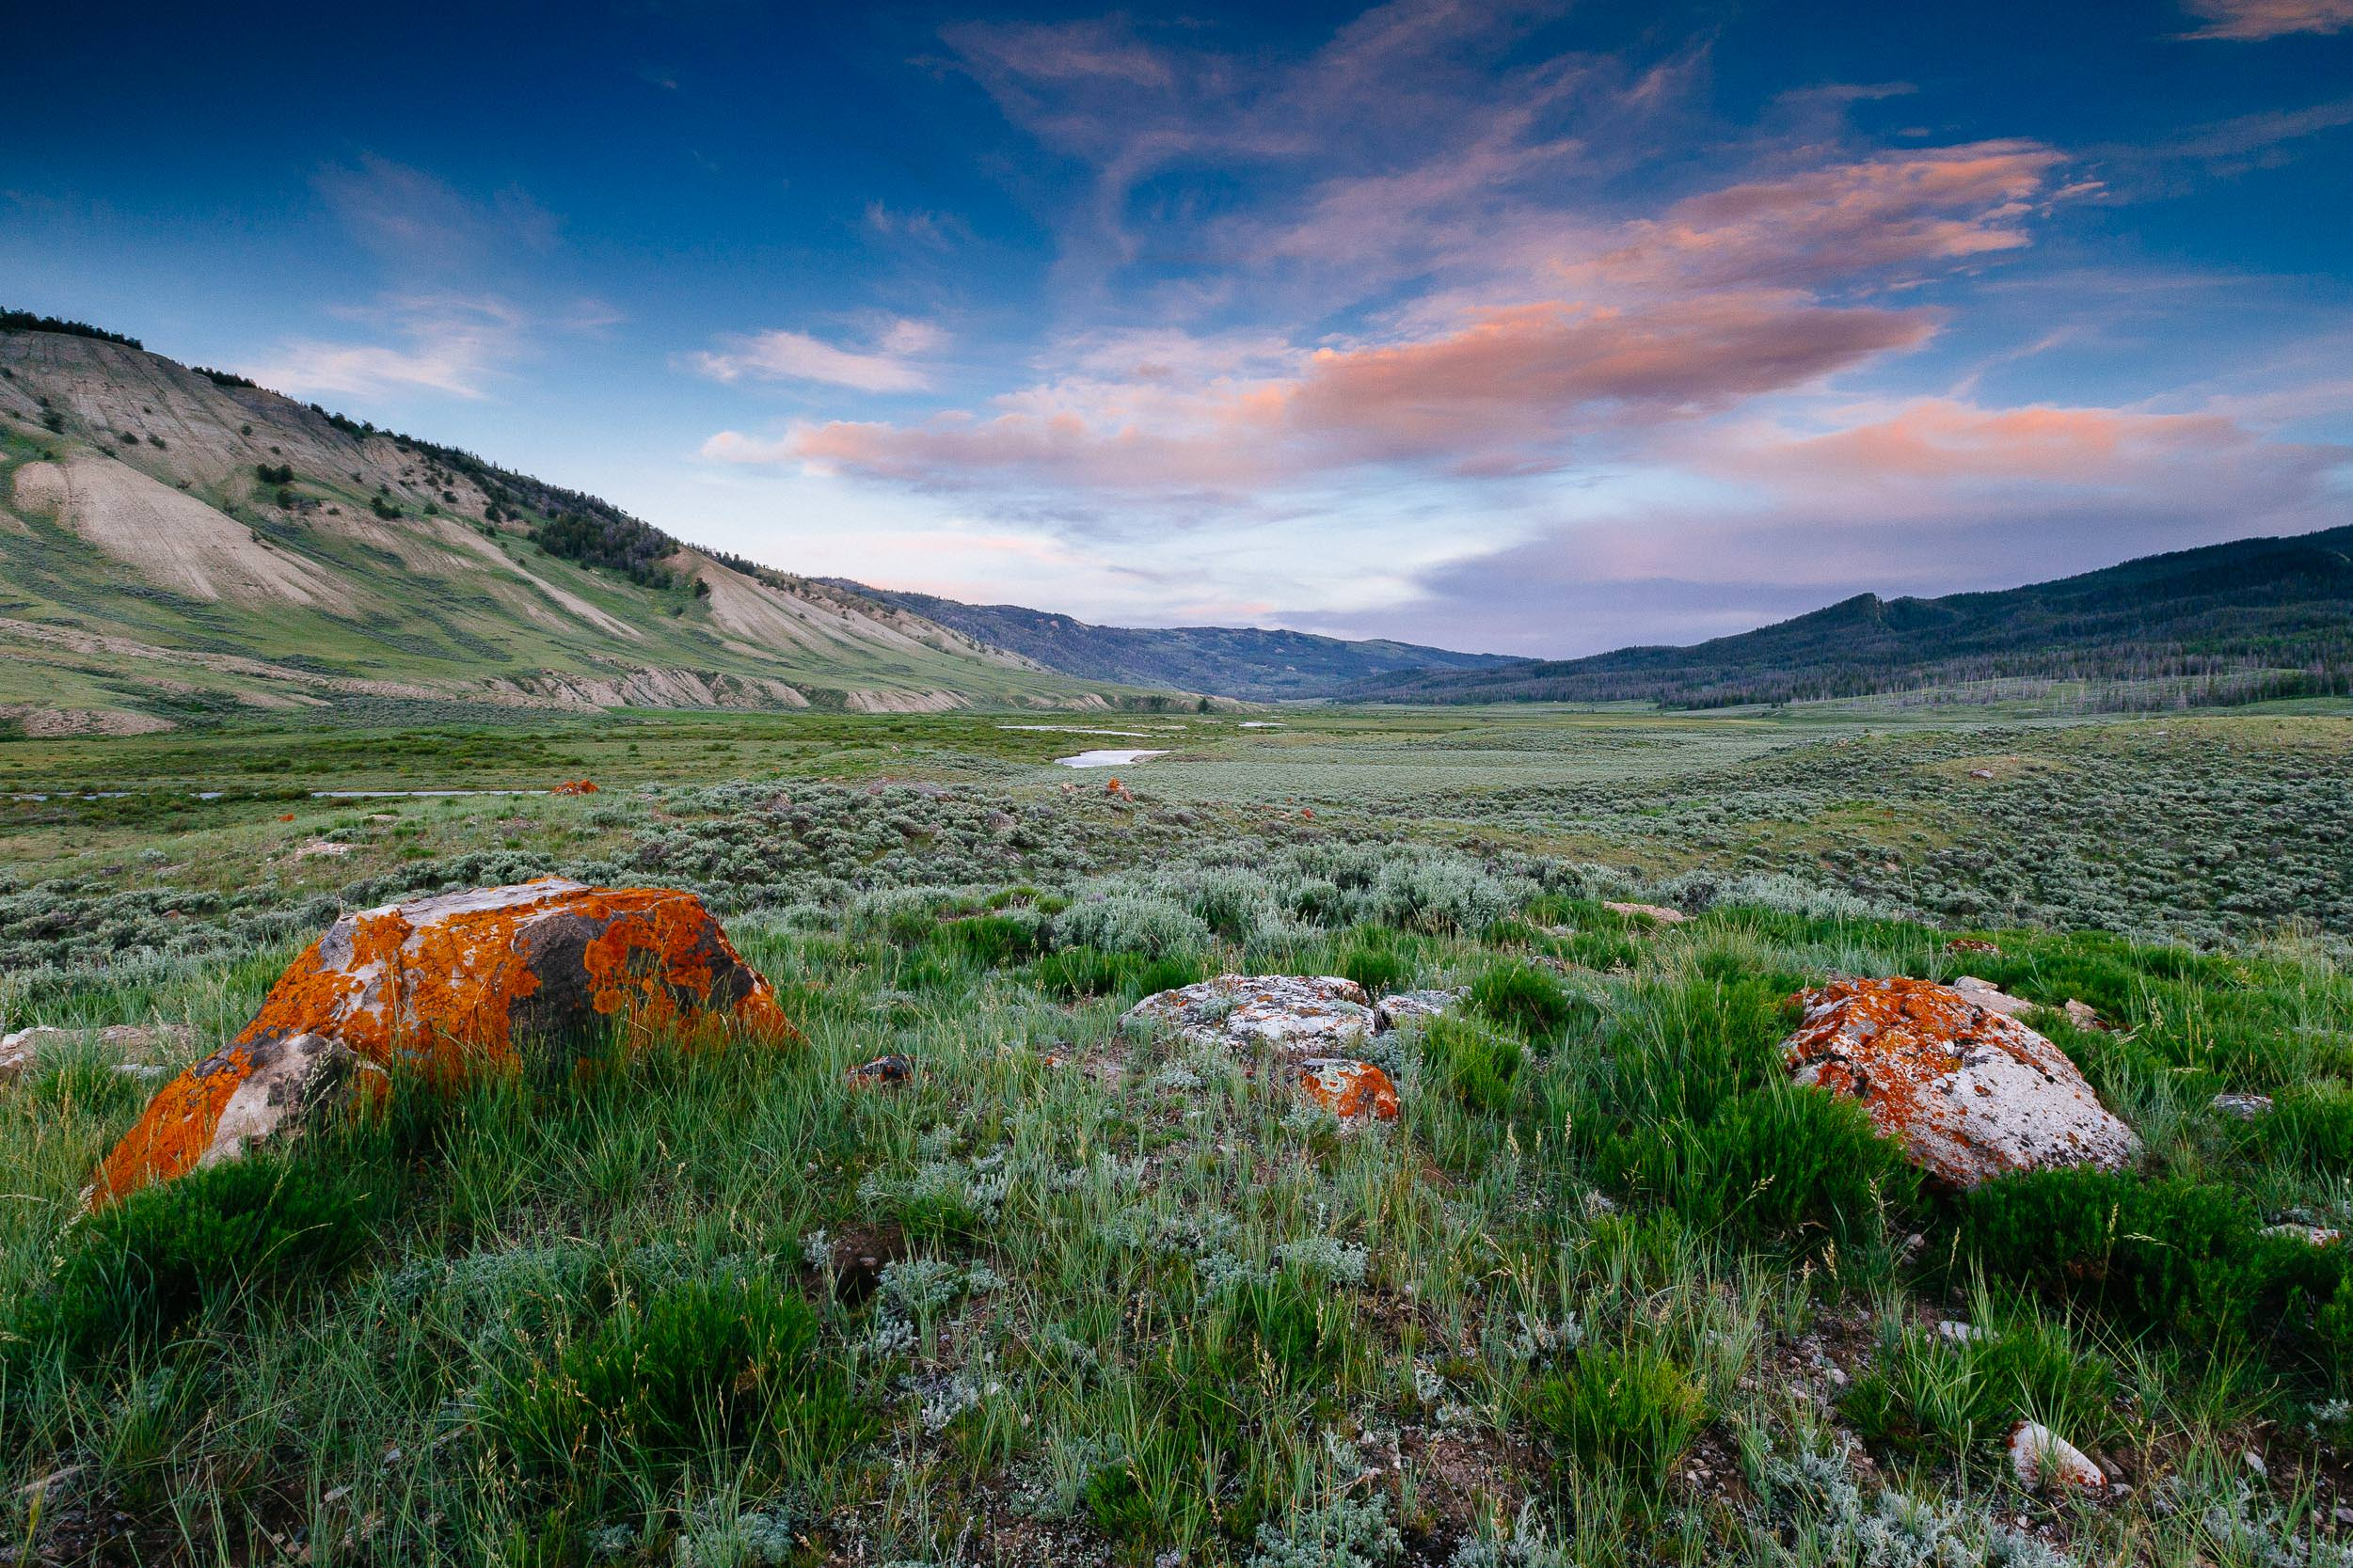 The sun sets over a valley in the Upper Gros Ventre range photo taken for Trust for Public Land